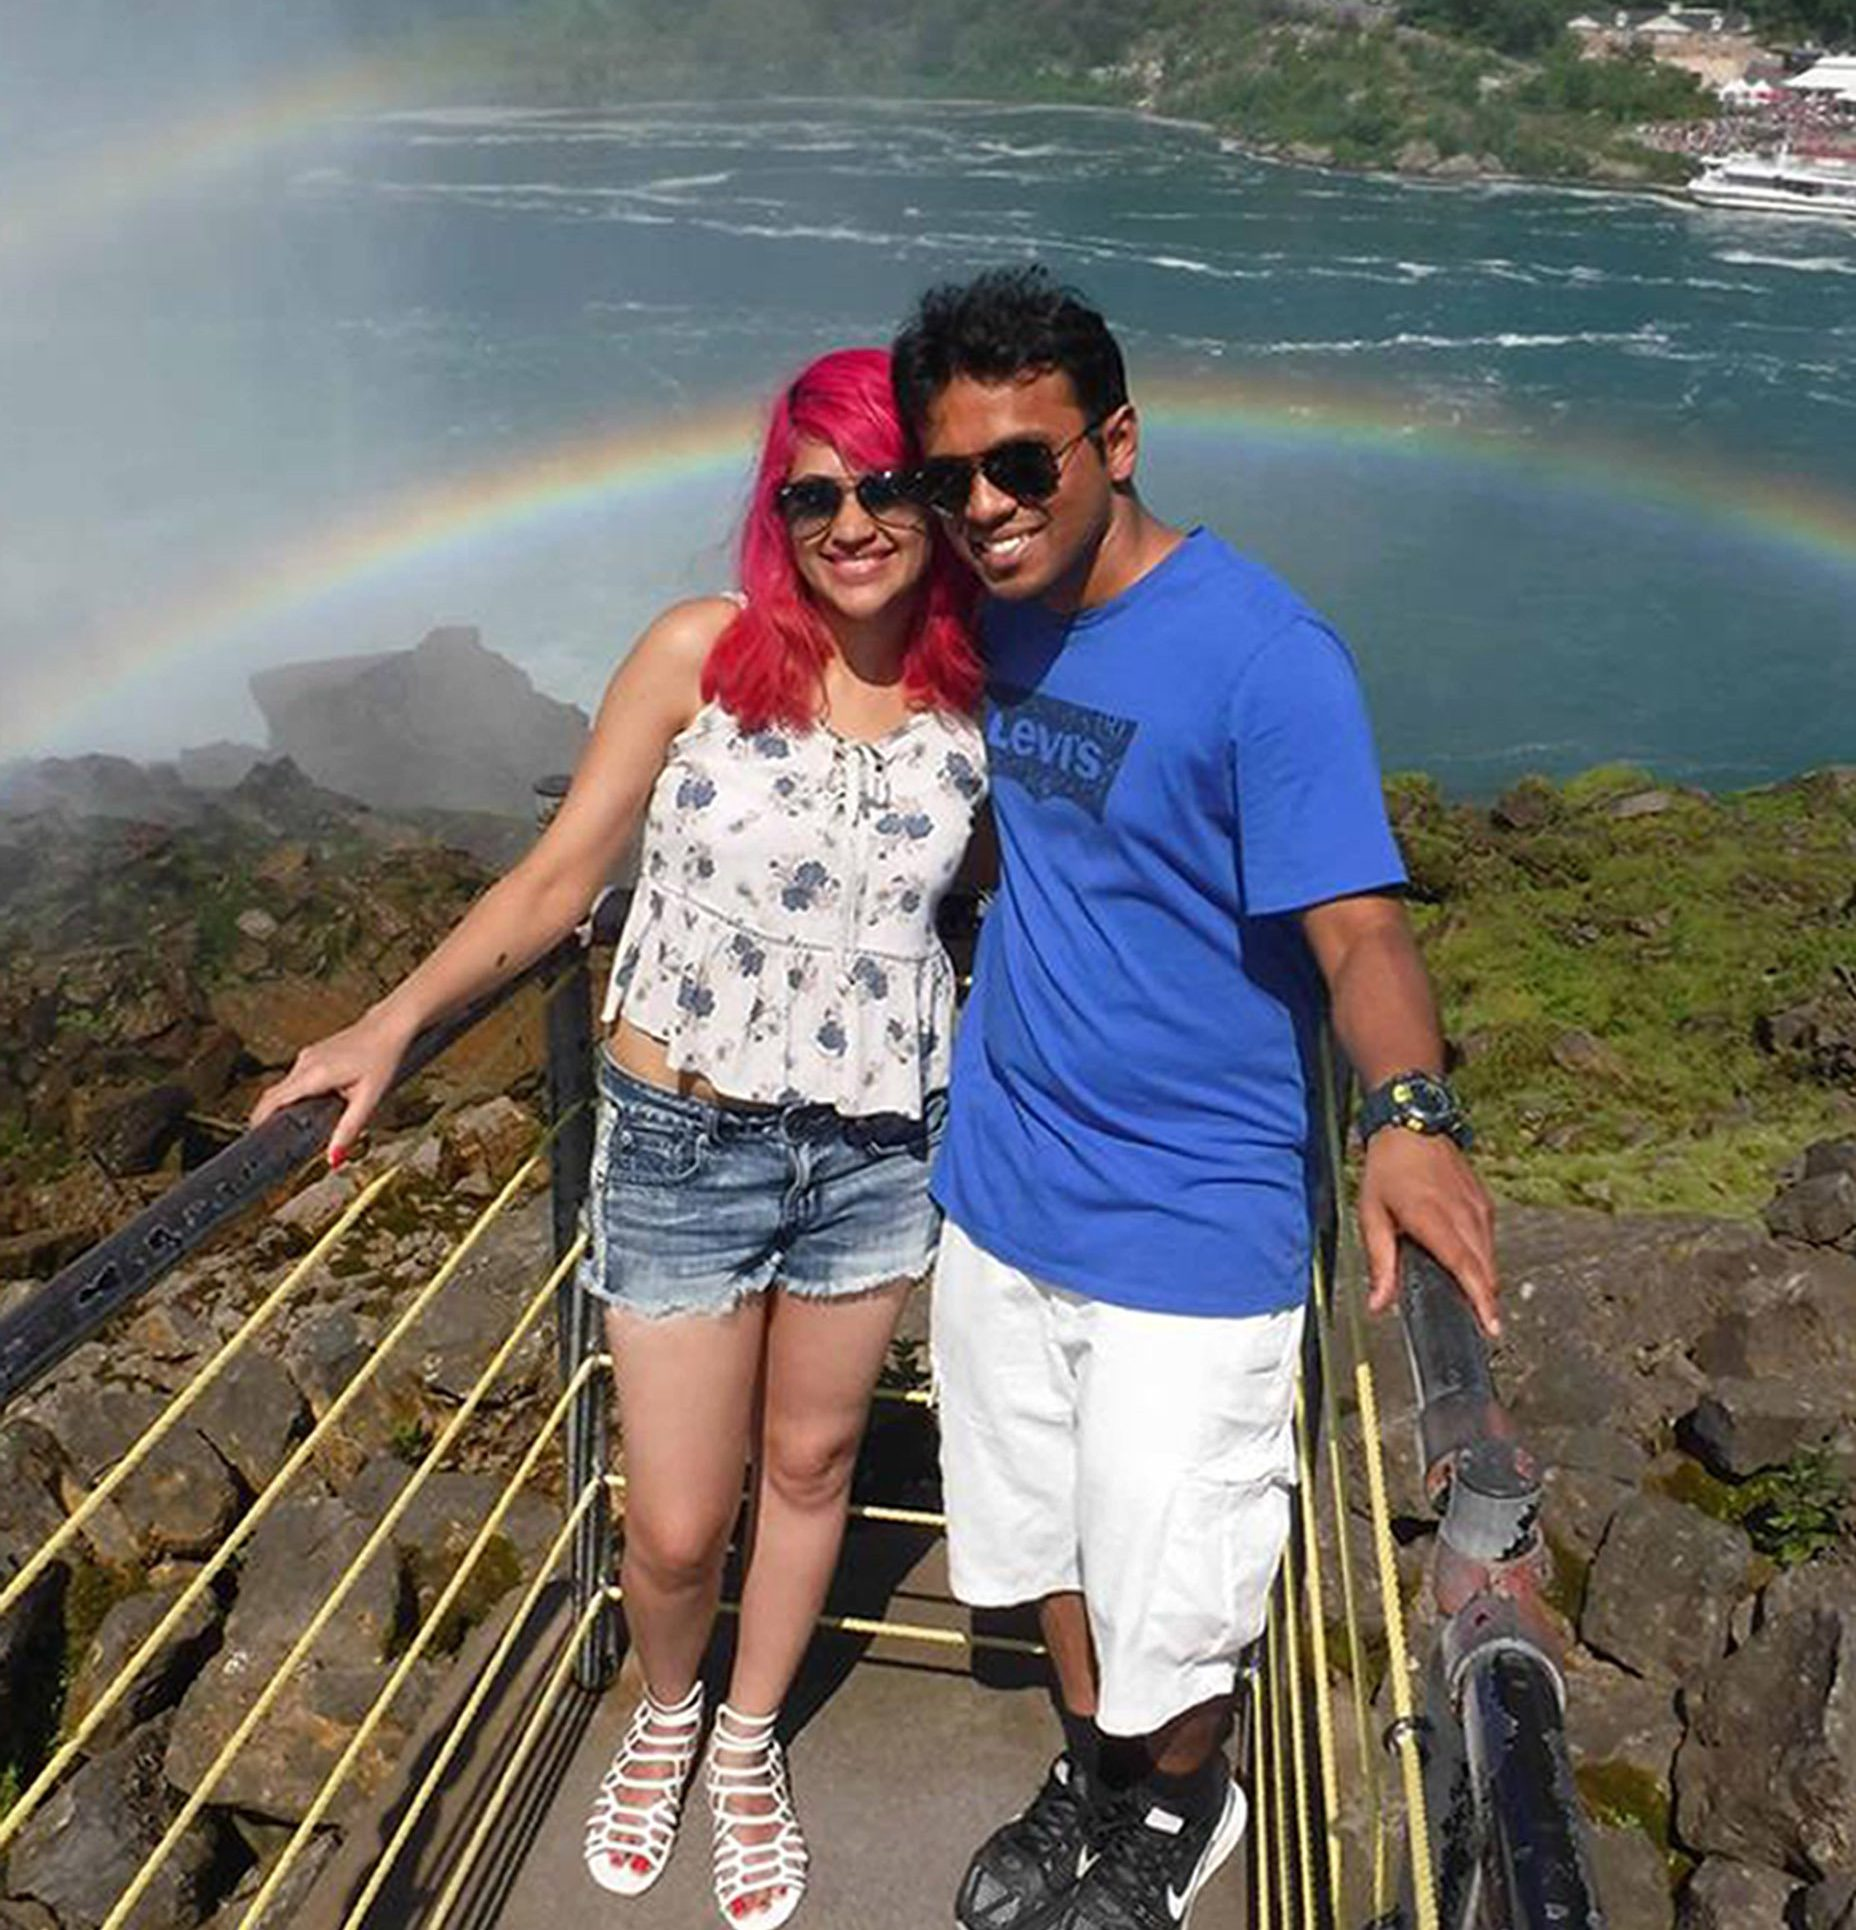 Images of (right) Vishnu Viswanath, 29, and Meenakshi Moorthy, 30, both fell to their deaths from Taft Point, Yosemite National Park. In a tragic incident, an Indian couple died after falling 800 feet in an area with steep terrain in California's Yosemite National Park this week, according to a media report. Vishnu Viswanath, 29, and Meenakshi Moorthy, 30, fell to their deaths from Taft Point in Yosemite National Park. They were identified on Monday as a married couple from India living in the United States, the San Francisco Chronicle reported. The report said that the couple had recently moved from New York after Vishnu Viswanath took a job as a systems engineer at Cisco, based in San Jose. Together, they chronicled their adventures of travelling around the world in a blog called 'Holidays and HappilyEverAfters'. Rangers recovered their bodies on the steep terrain on Thursday below Taft Point, a popular tourist spot that offers spectacular views of the Yosemite Valley, Yosemite Falls, and El Capitan. Visitors had spotted the bodies a day earlier. Picture: Universal News And Sport (Europe) 30/10/2018